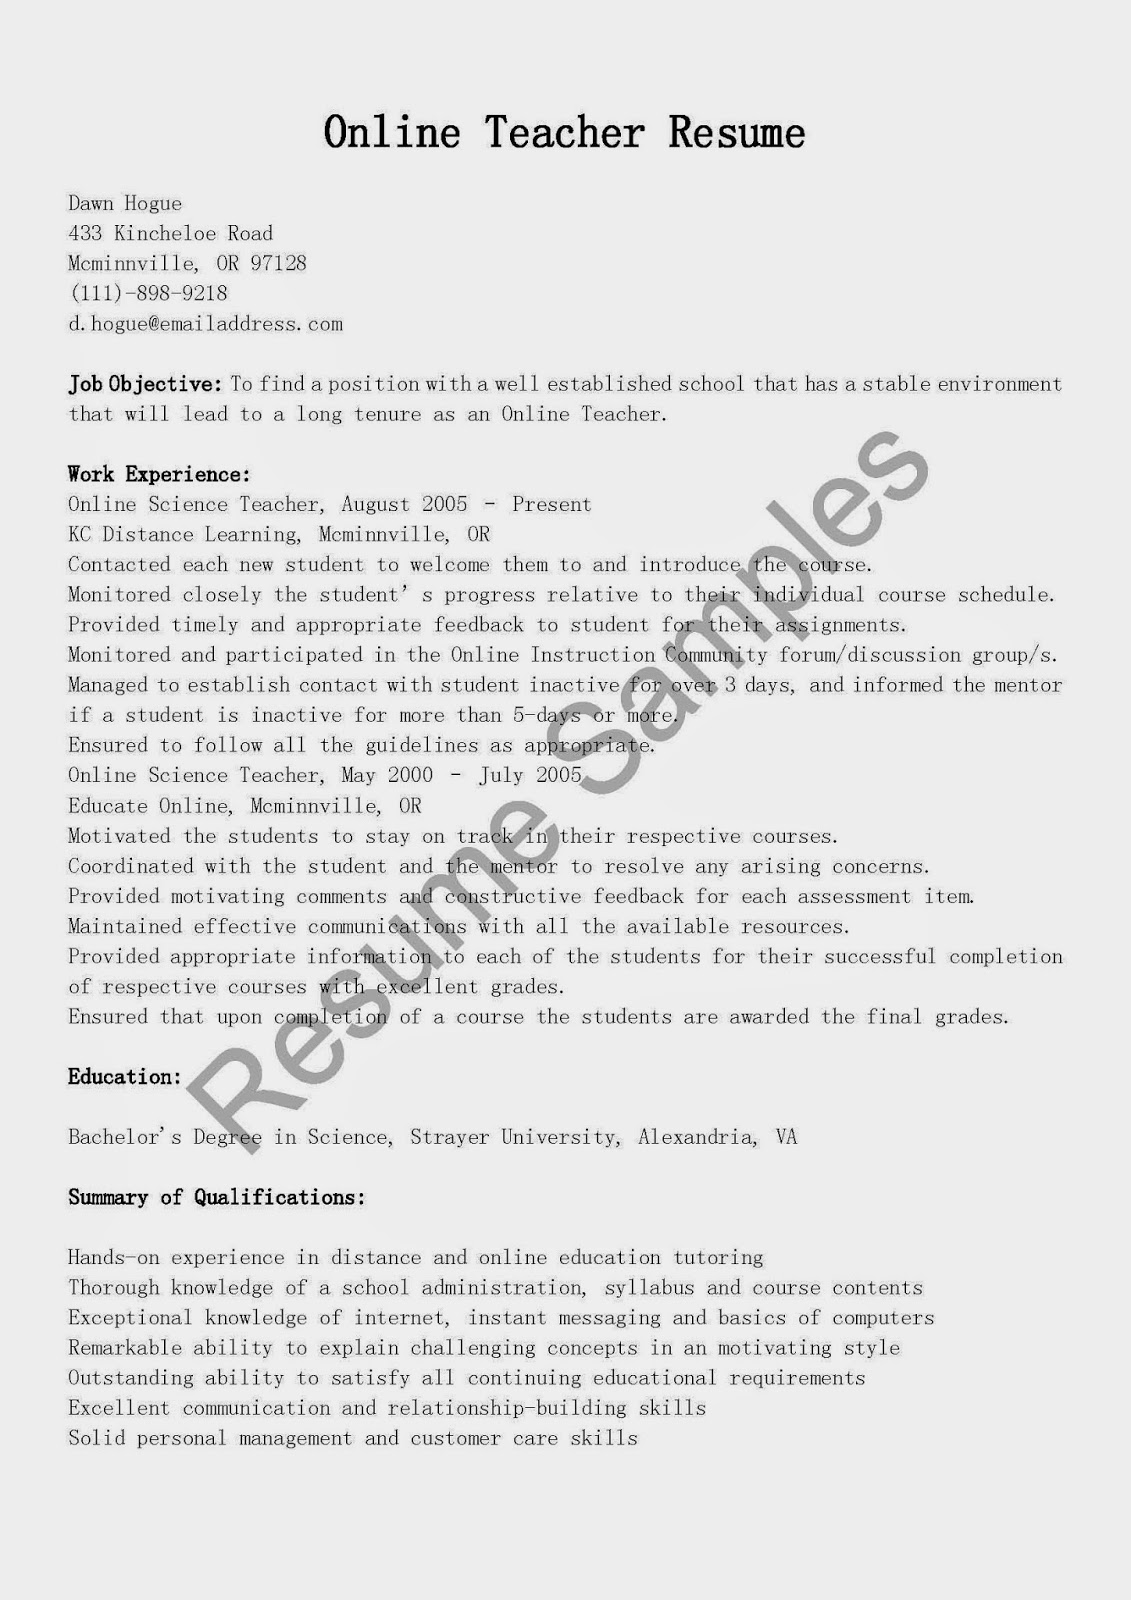 Sample Teacher Resume Templates Resume Samples Online Teacher Resume Sample